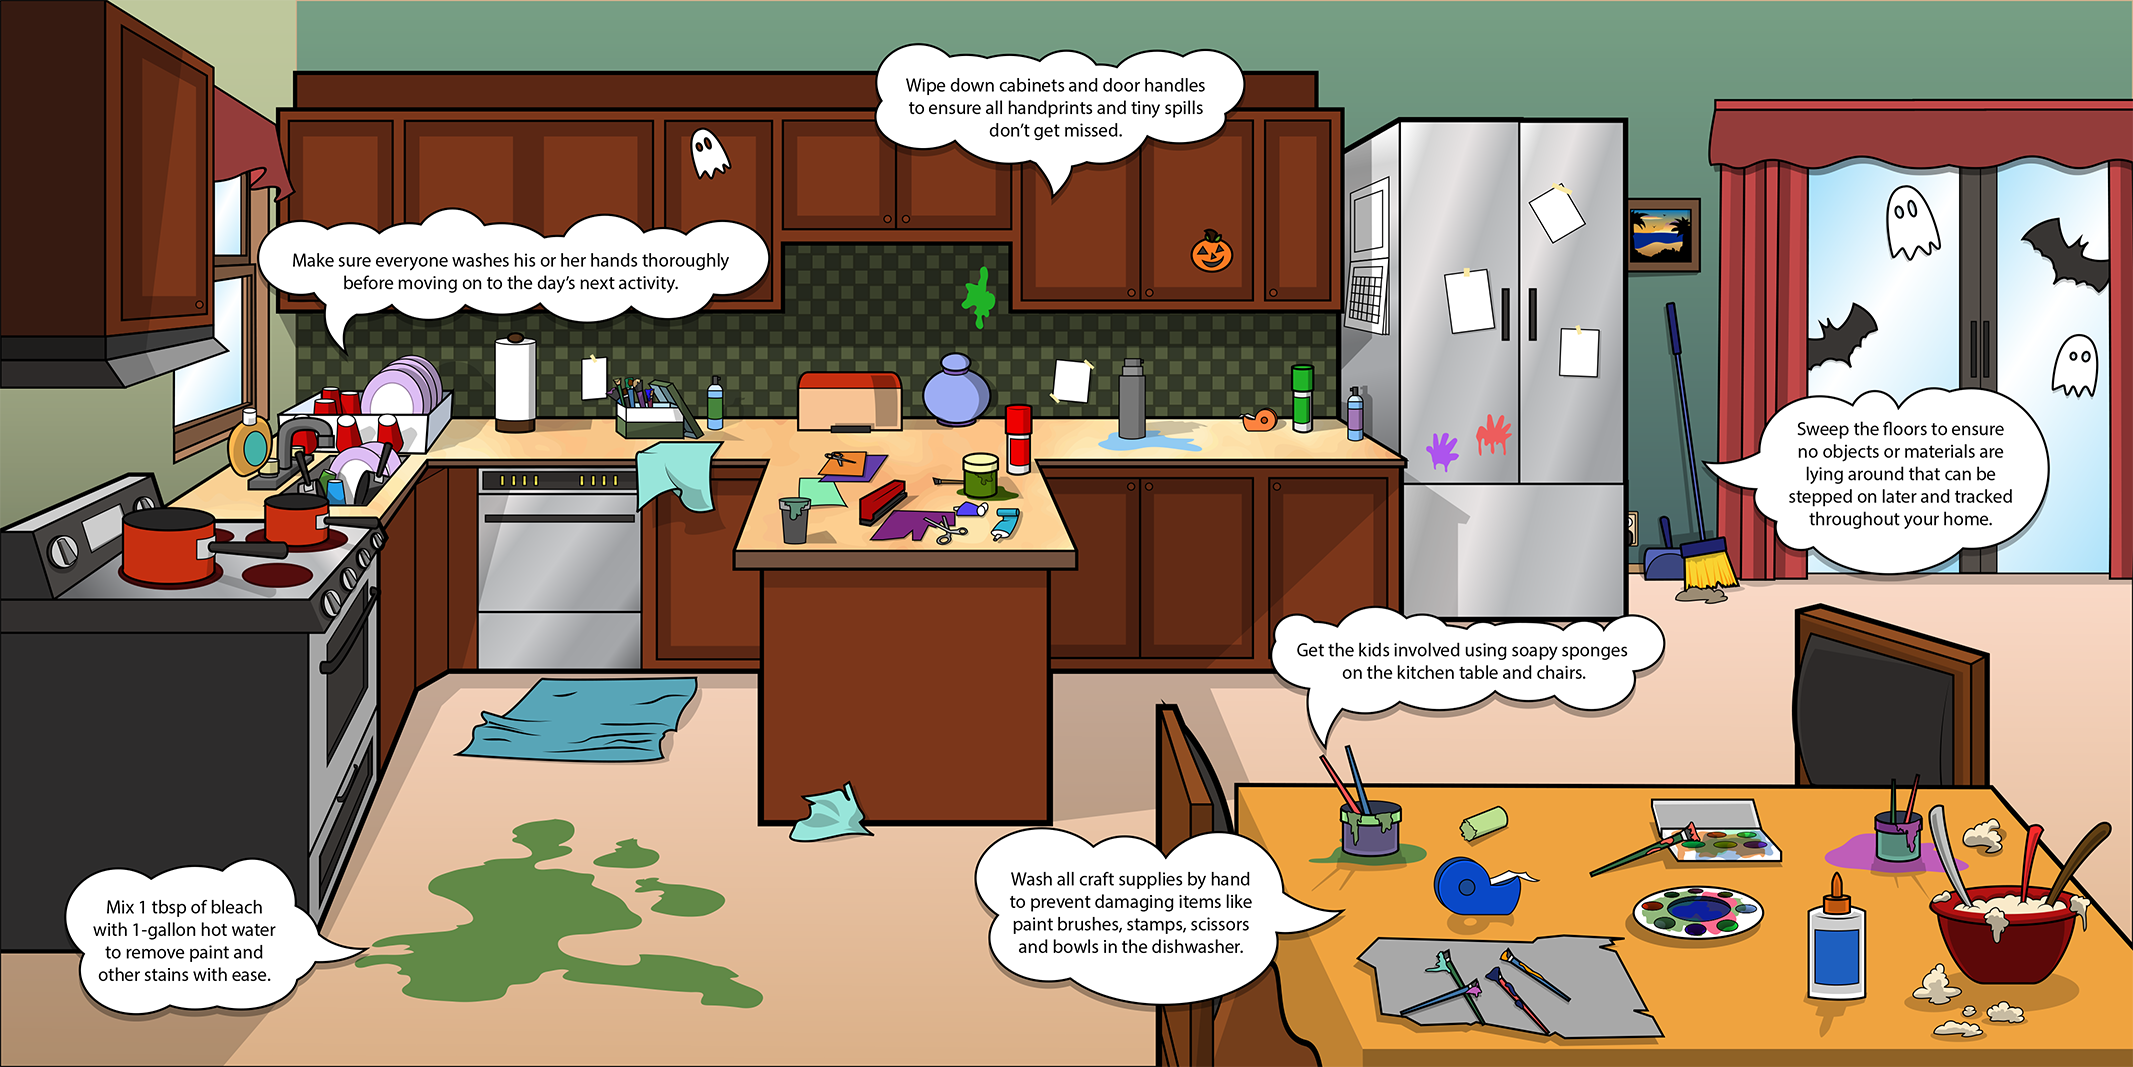 Clorox Infographic: Clean It Up